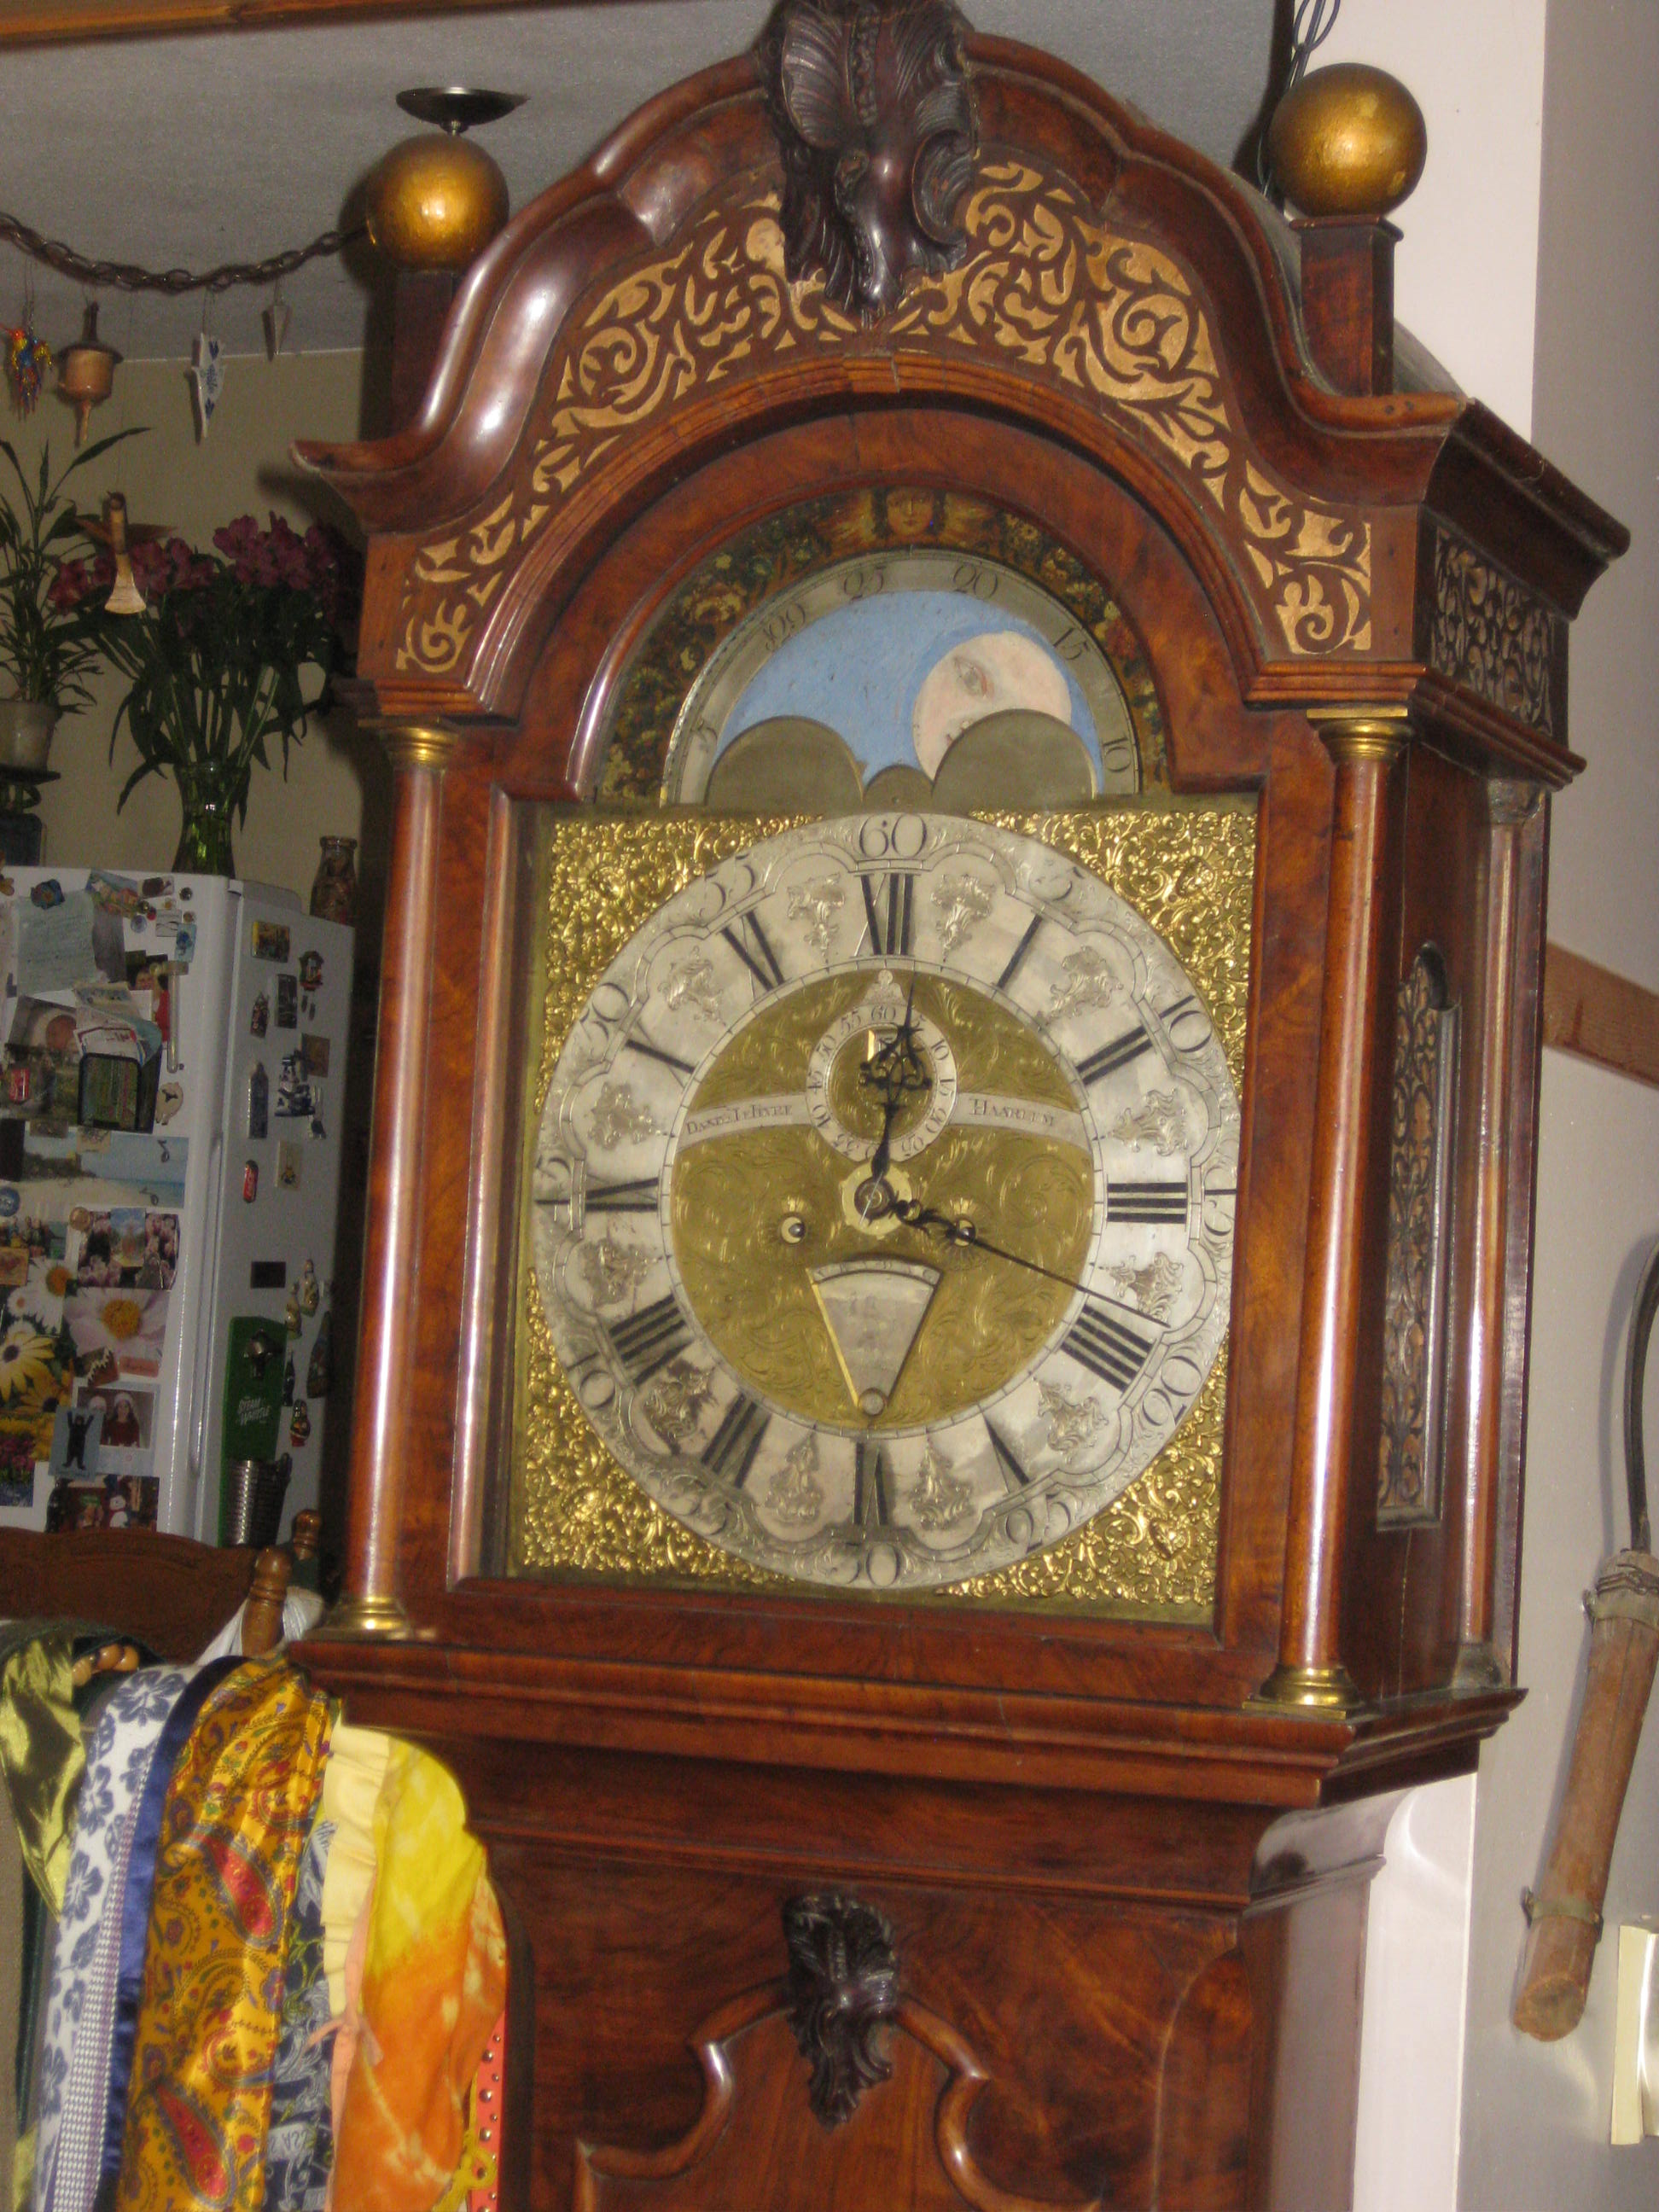 early 1700 Dutch tall clock